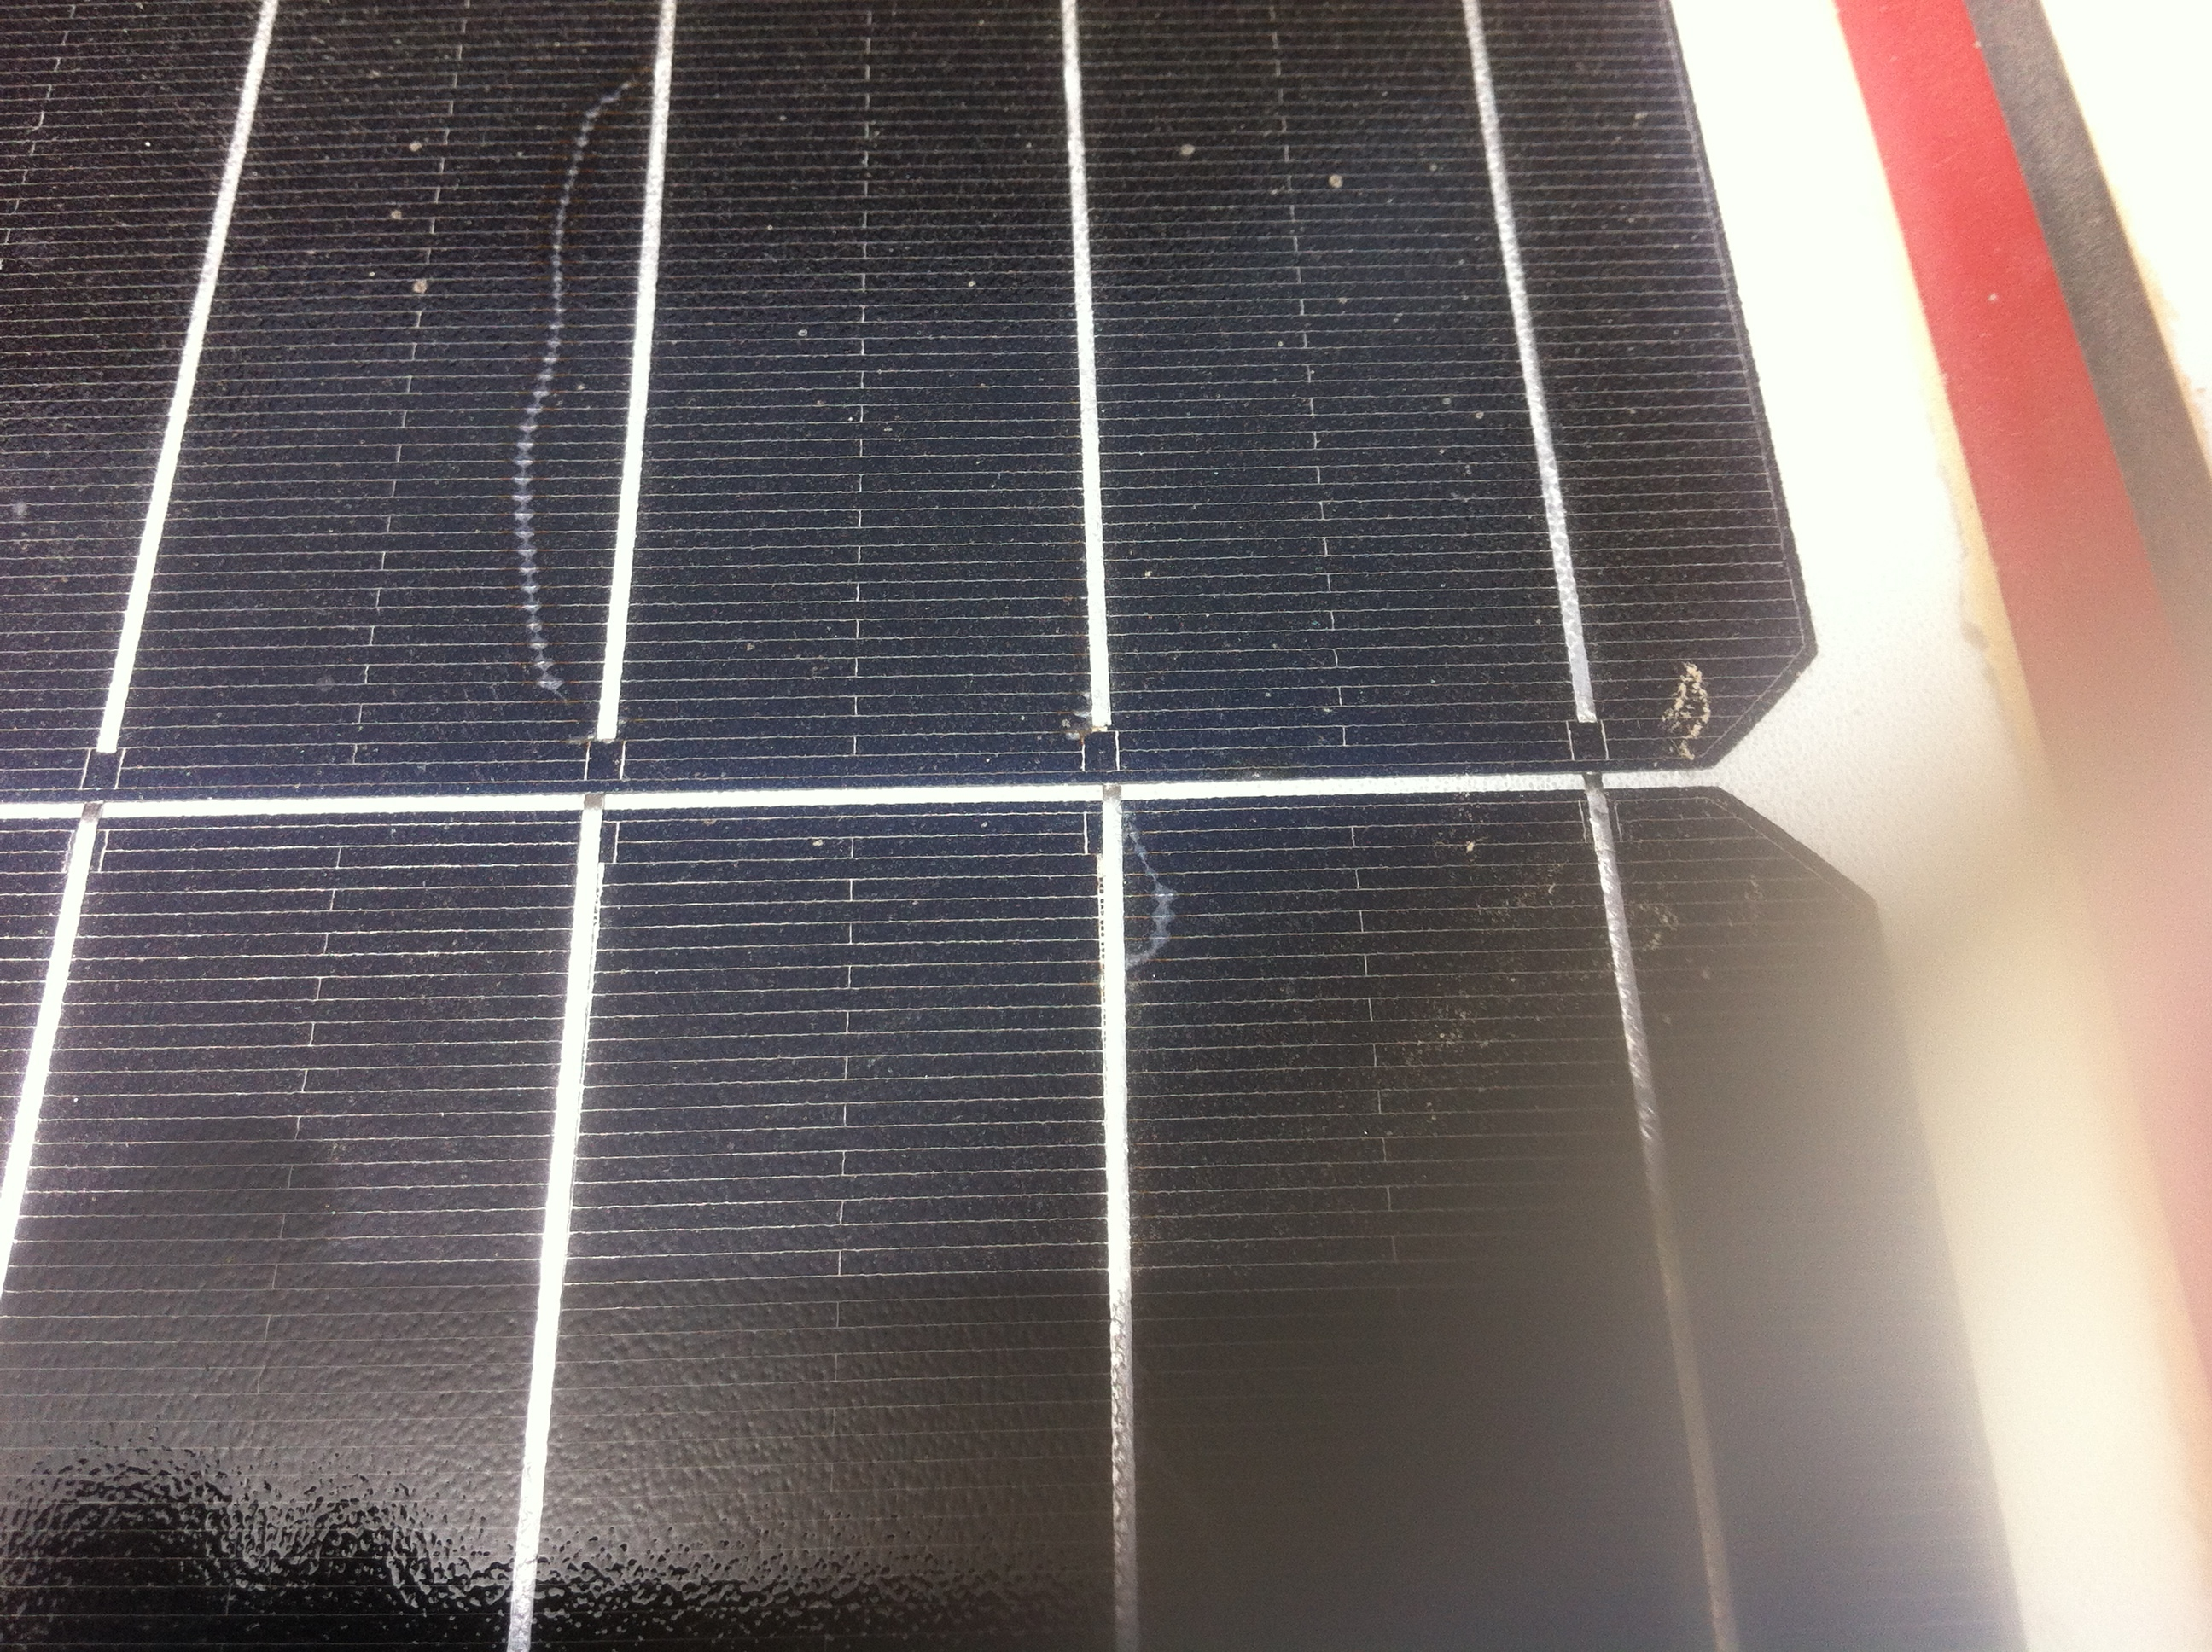 Diy Solar Panel Installation Controller Selection And